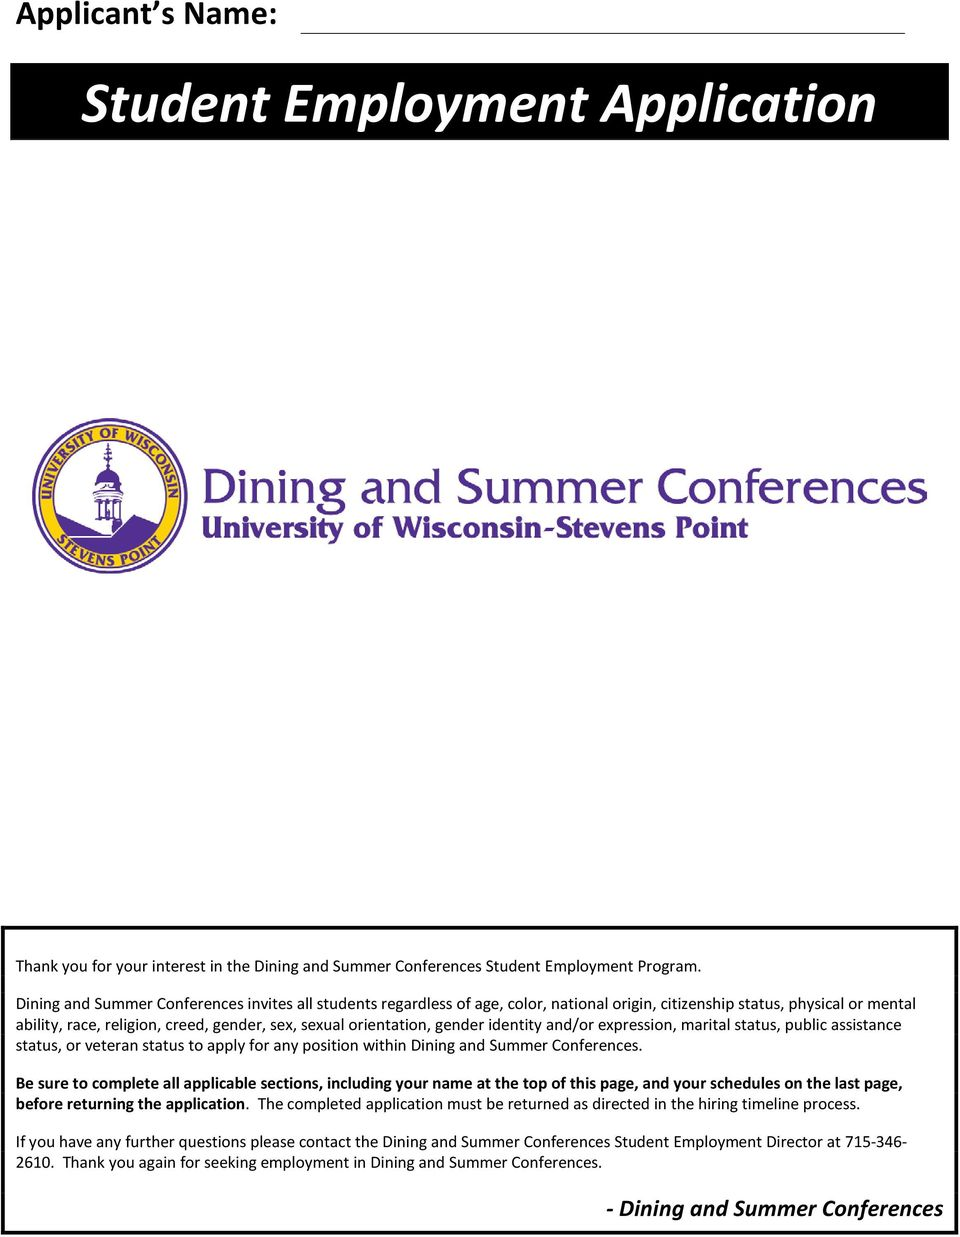 gender identity and/or expression, marital status, public assistance status, or veteran status to apply for any position within Dining and Summer Conferences.